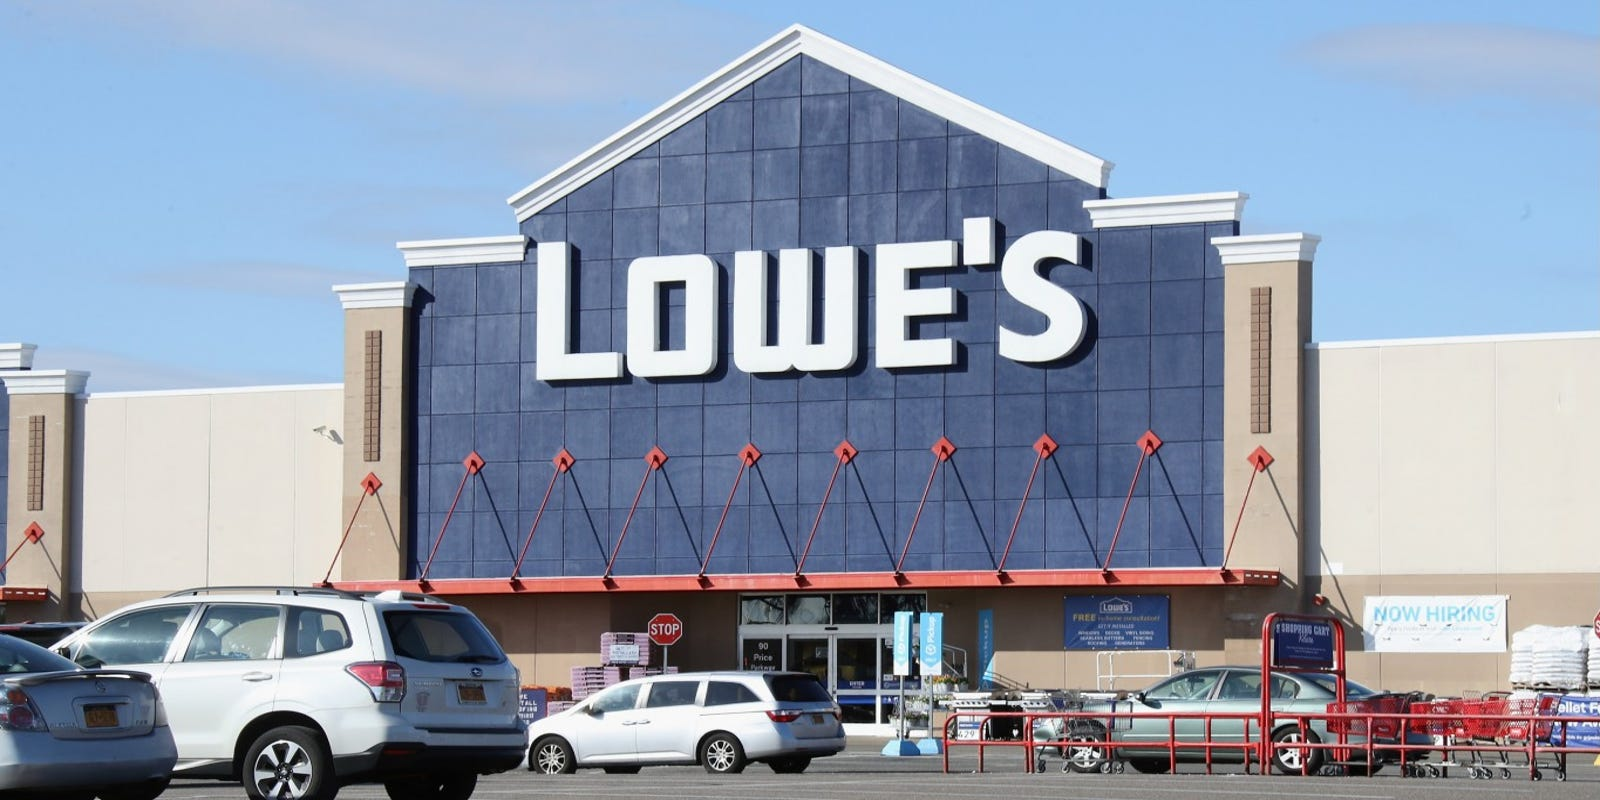 Saw recall: More than 256000 Kobalt cordless saws sold at Lowe's recalled for 'laceration hazard' – USA TODAY